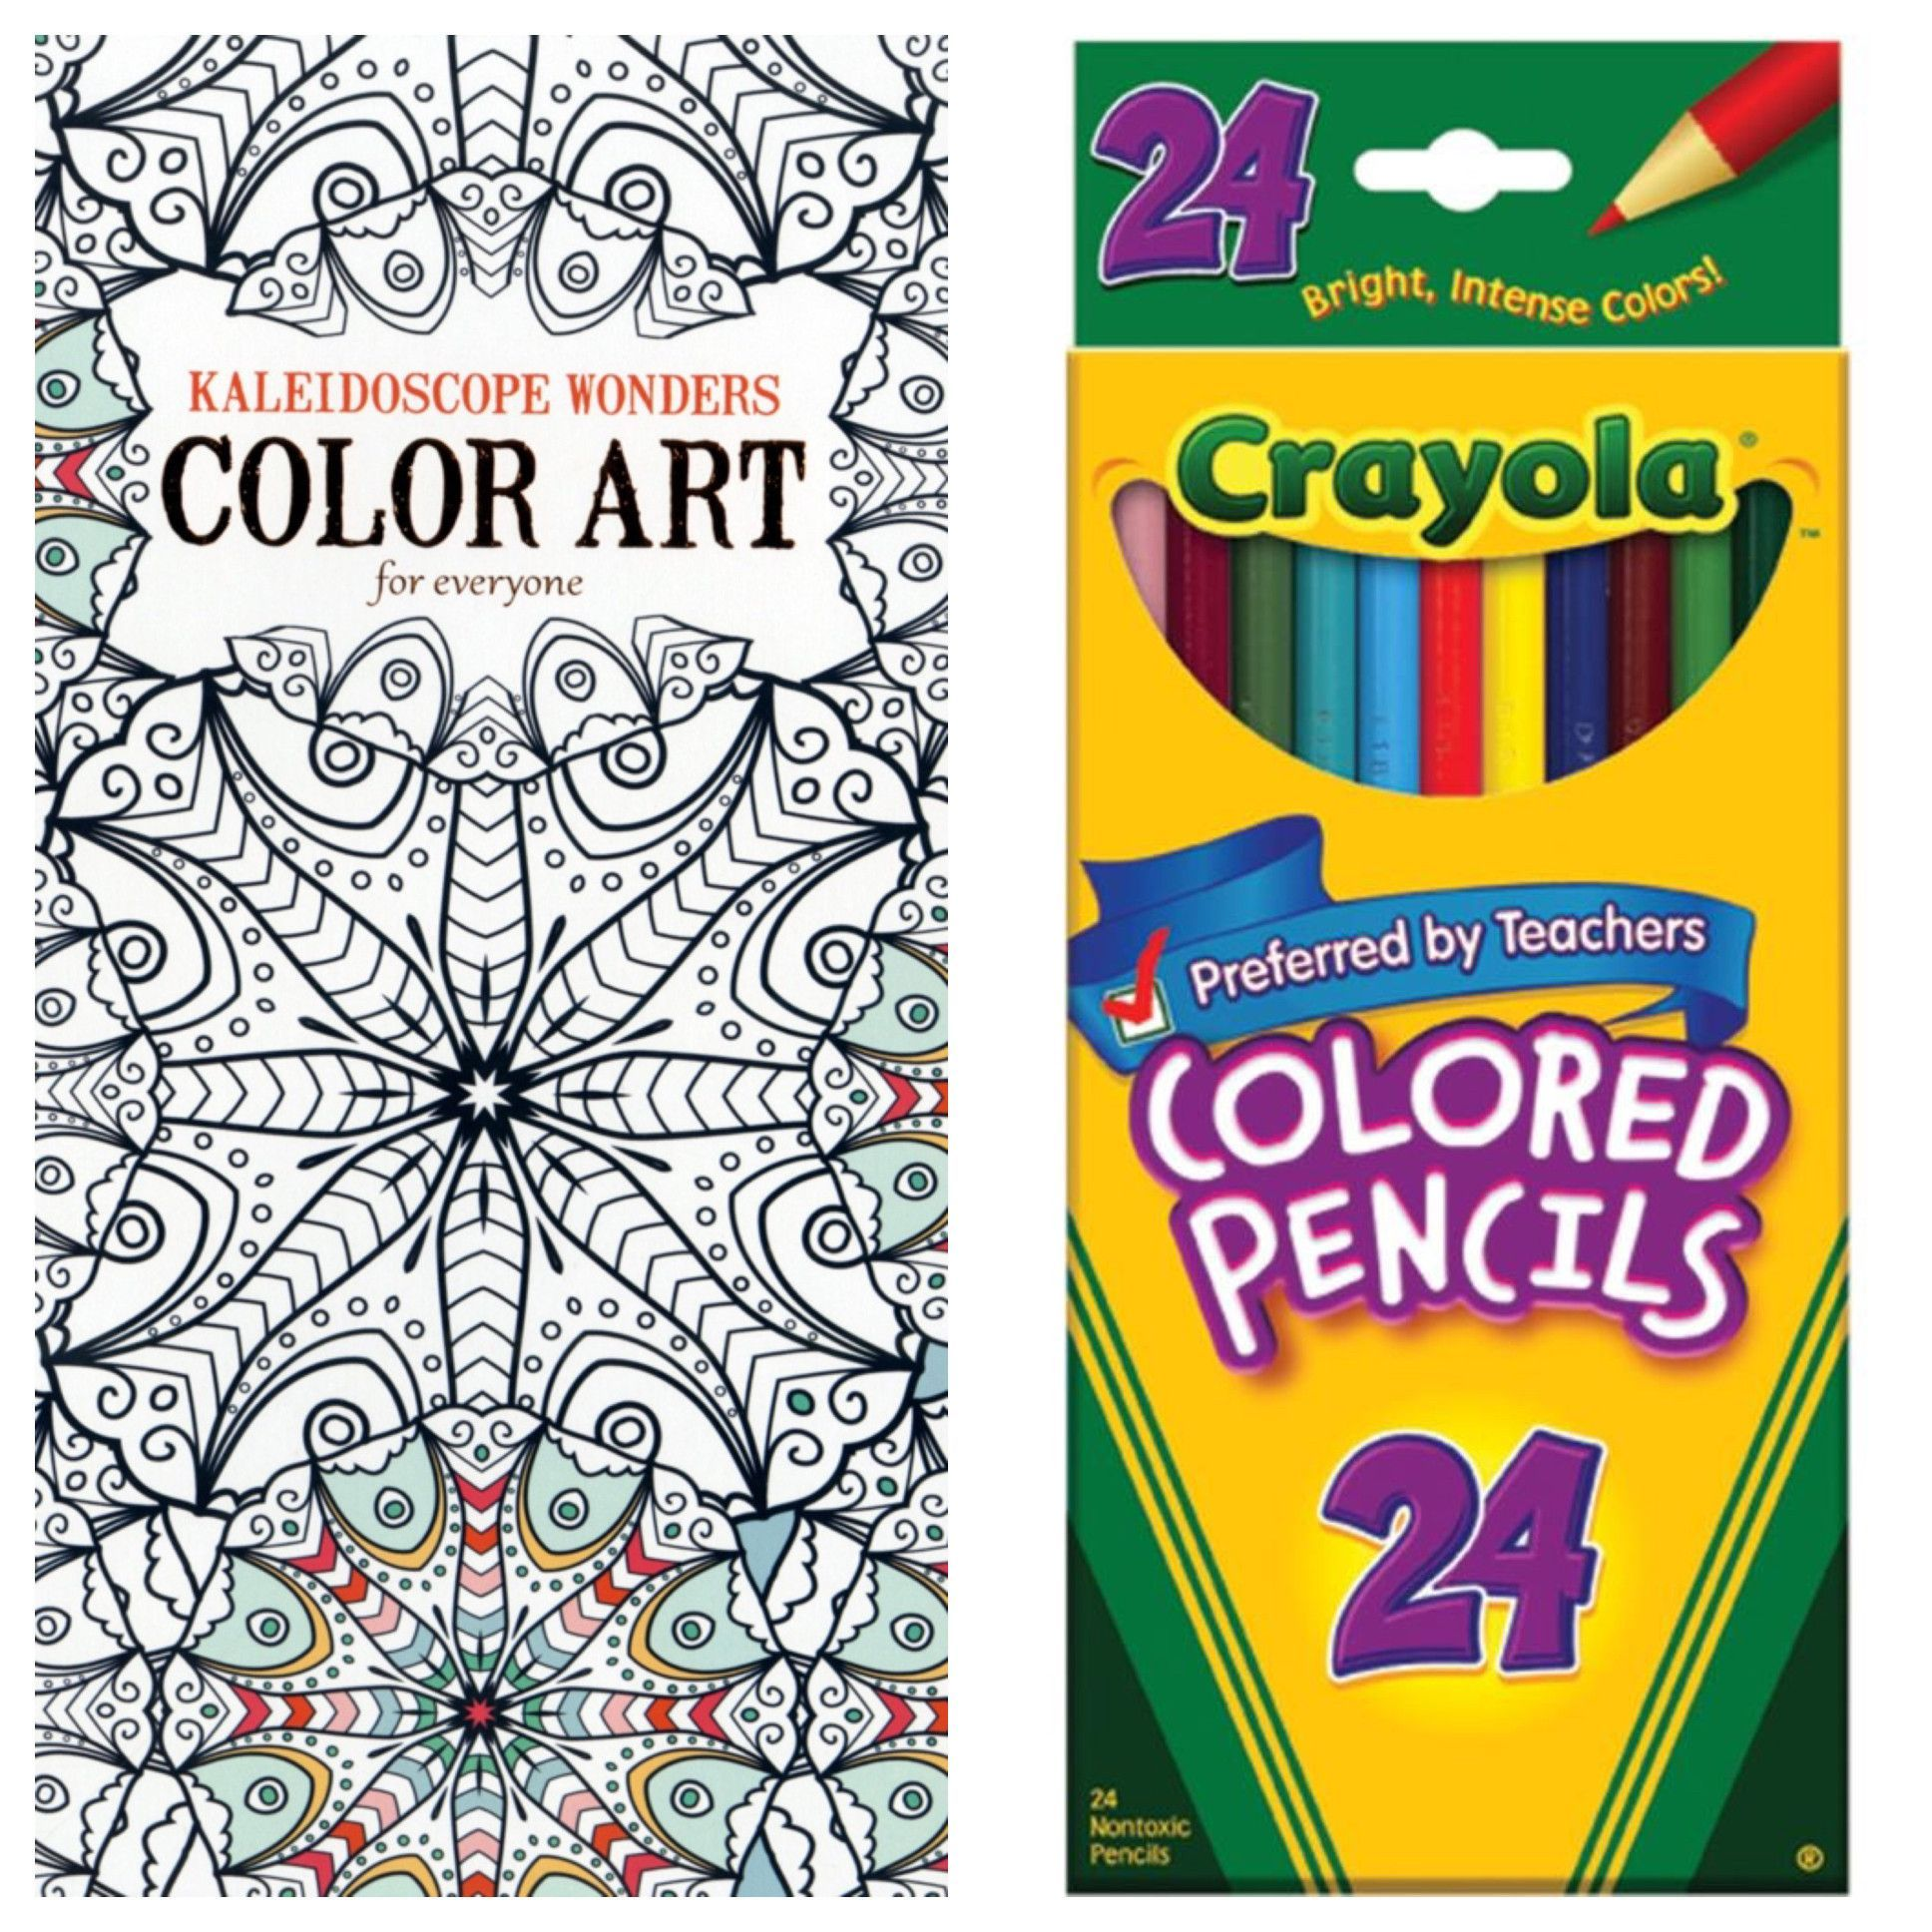 Kaleidoscope Wonders Adult Coloring Book With Crayola Colored ...